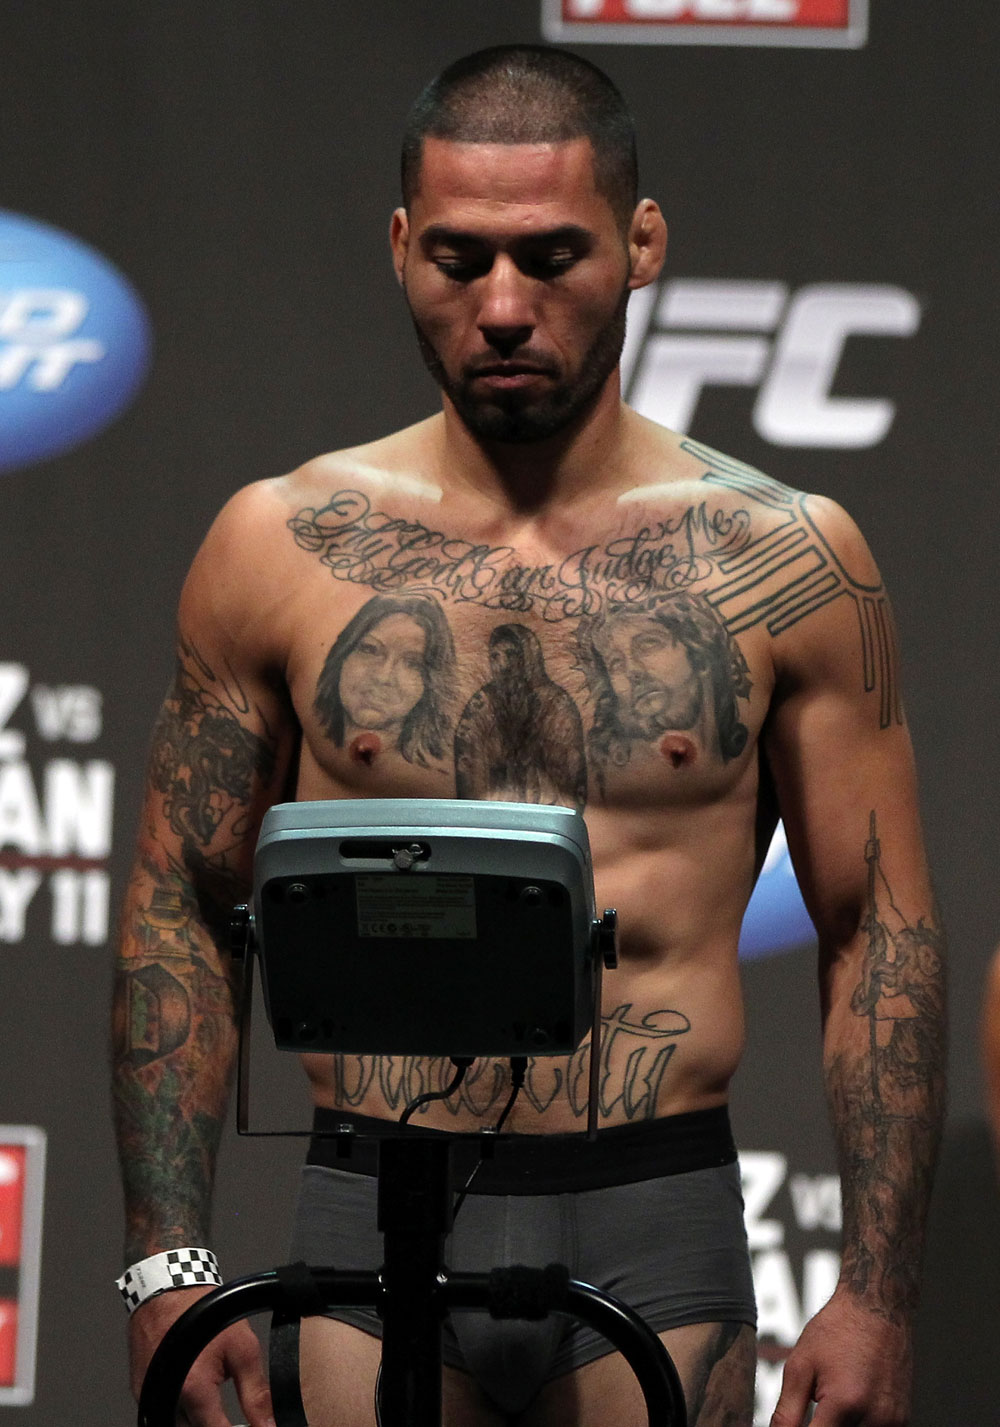 SAN JOSE, CA - JULY 10:   Damacio Page makes weight during the UFC on Fuel TV weigh in at HP Pavilion on July 10, 2012 in San Jose, California.  (Photo by Josh Hedges/Zuffa LLC/Zuffa LLC via Getty Images)